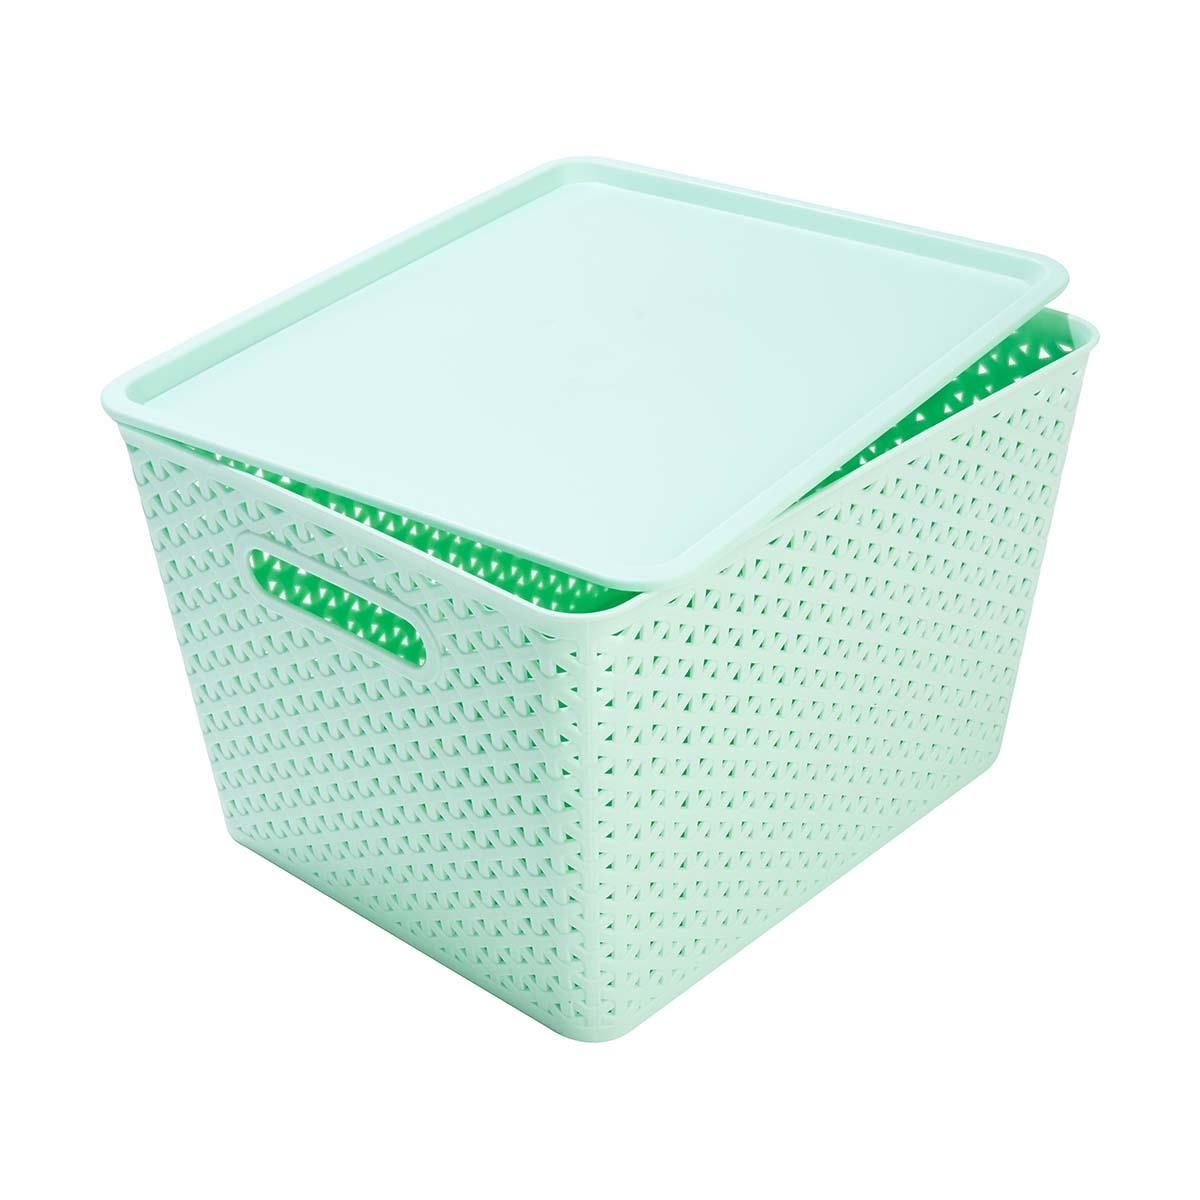 Storage Container Mint Home Co Woven Look Storage Containers With Drawers Storage Bins Cleaning Storage